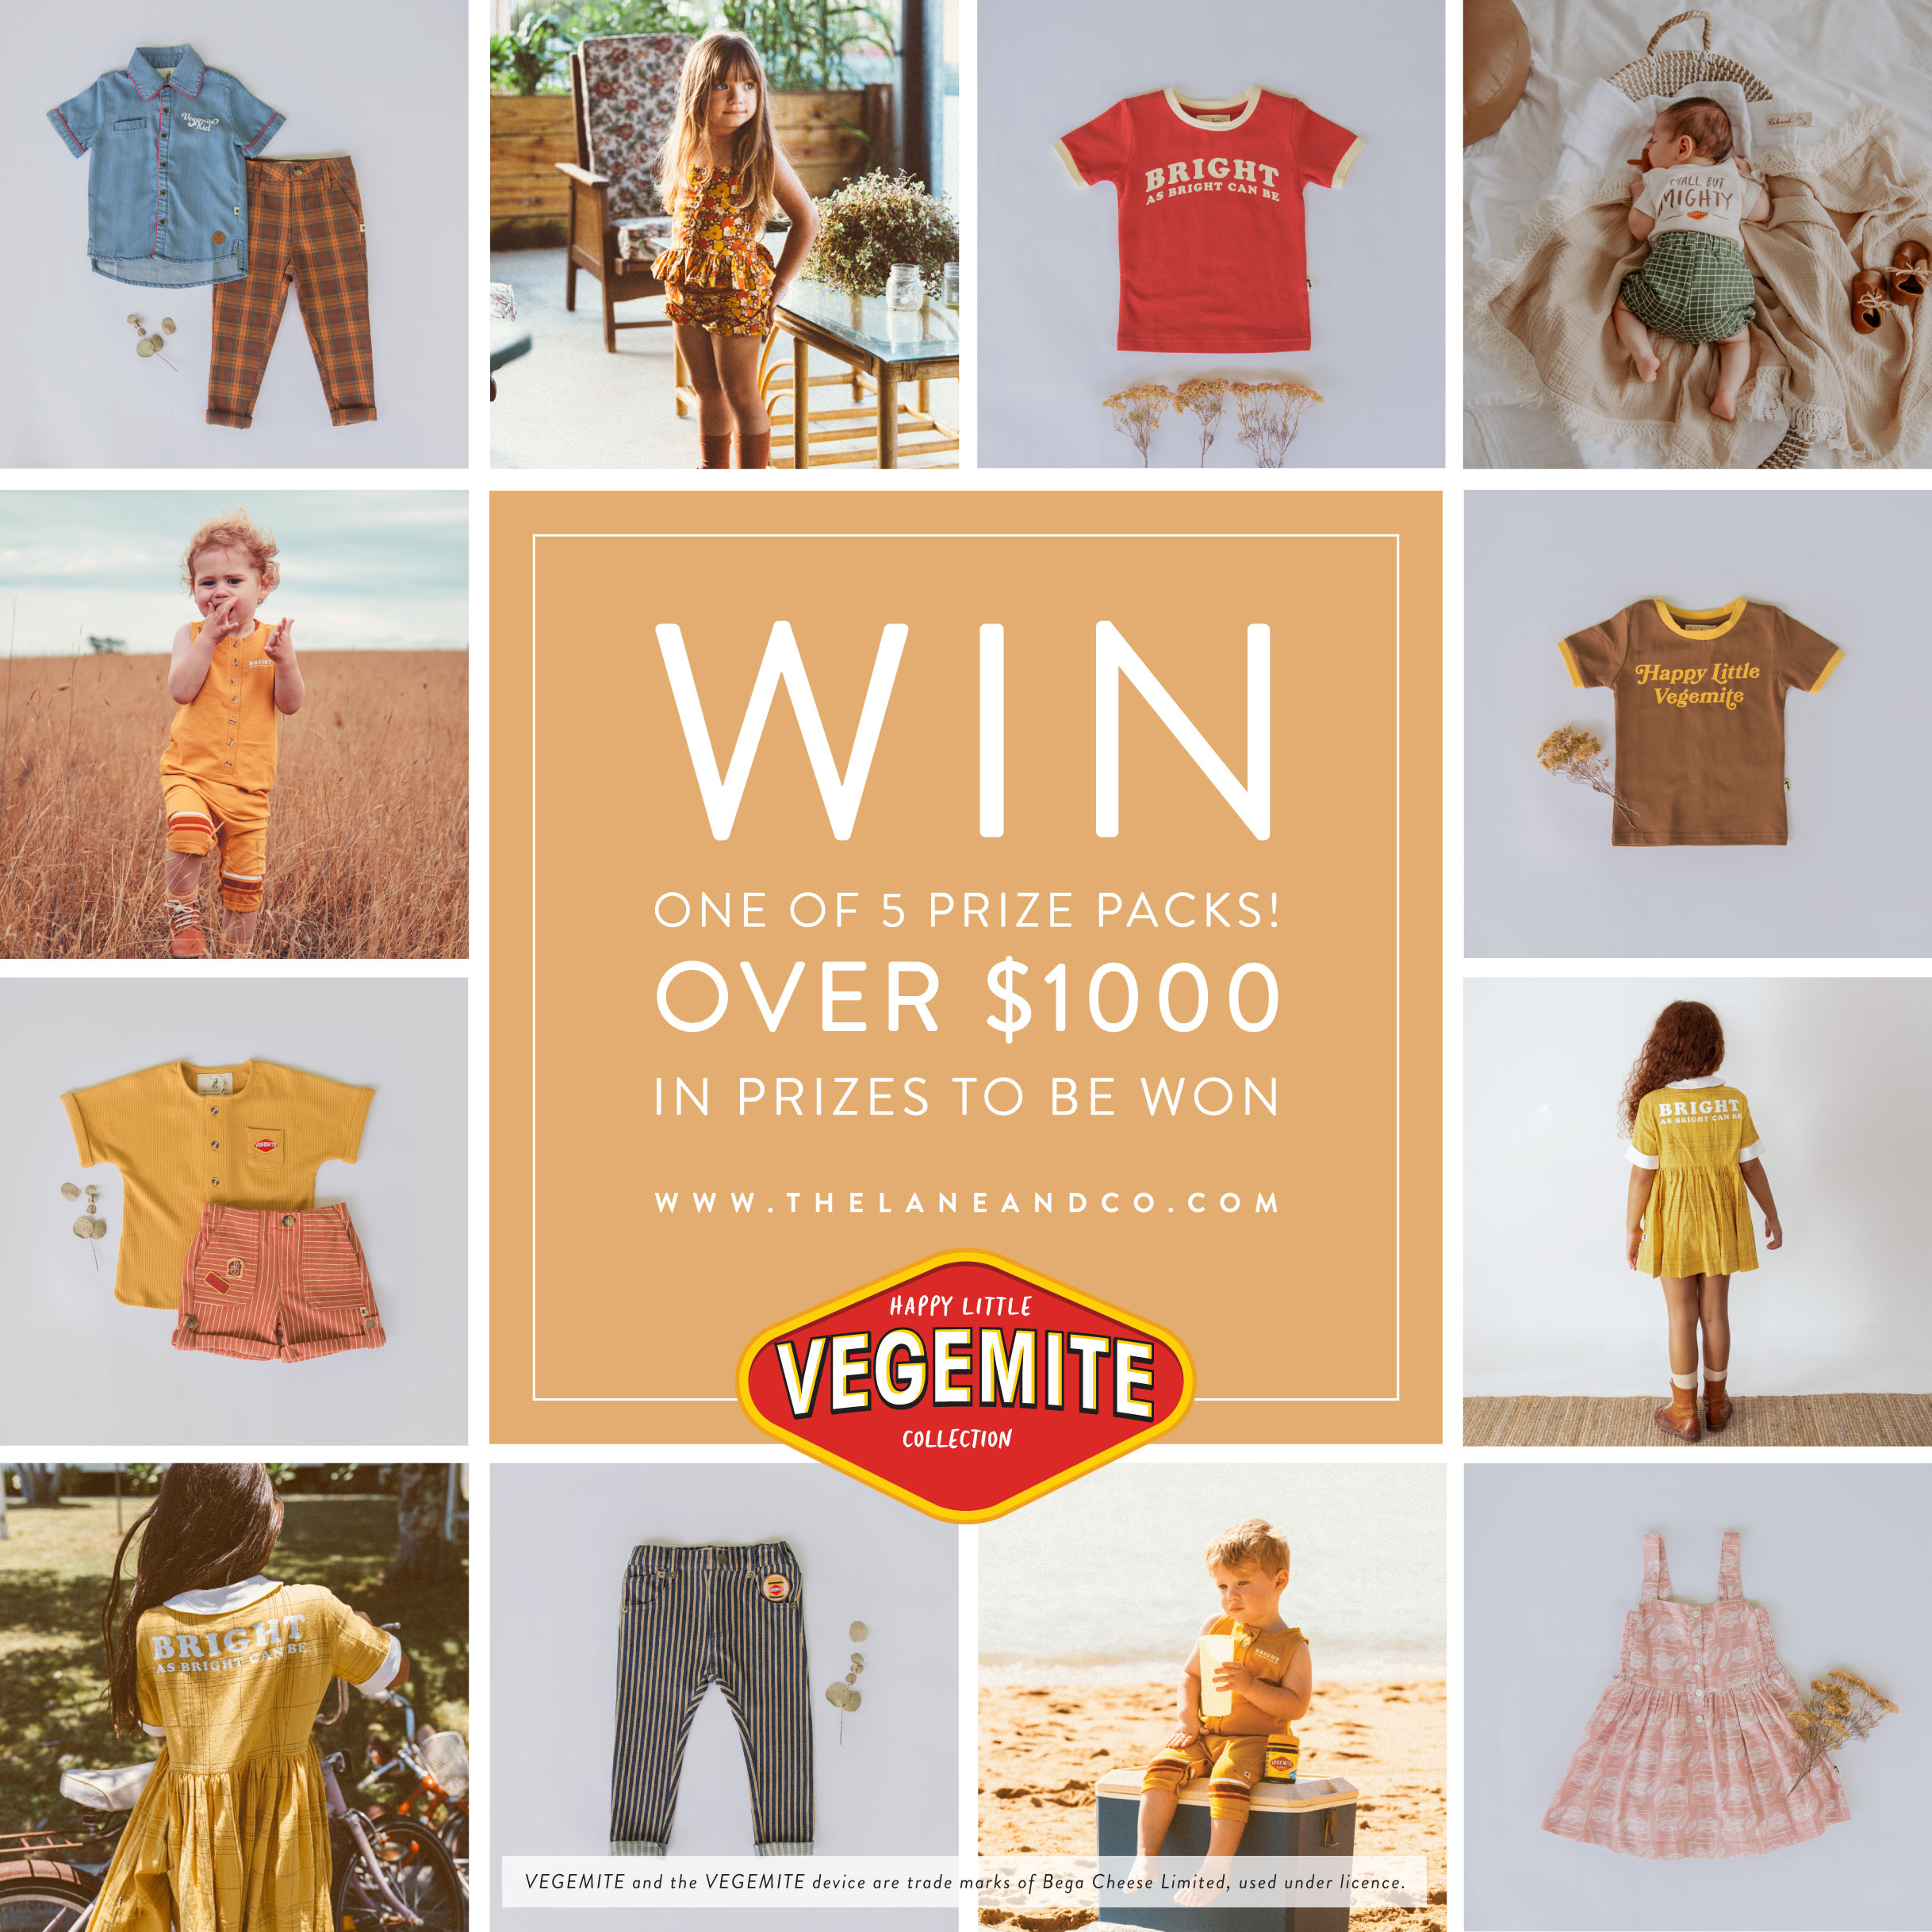 Enter for a chance to win 1 of 5 Vegemite prize packs and up to $300 to spend on Happy Little Vegemite Collection! 5 Winners! Over $1000 in Prizes to be Won! Giveaway Image